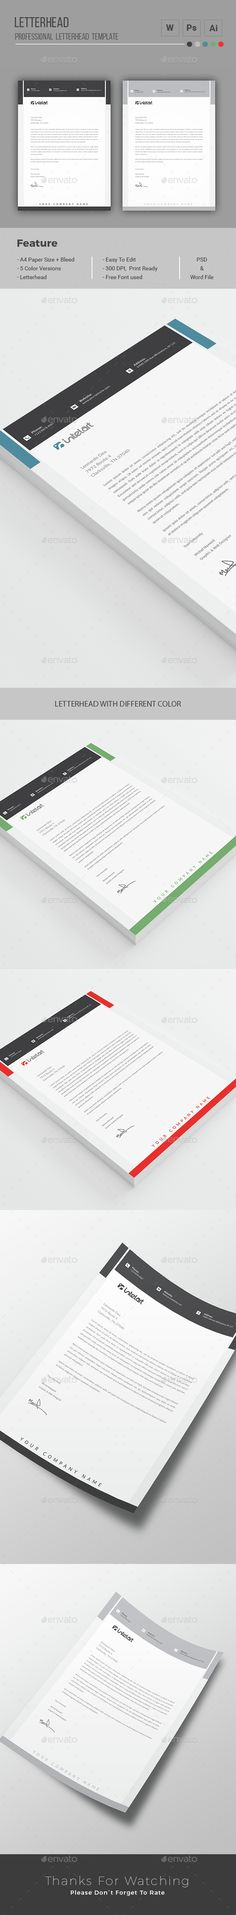 Letterhead template is simple yet elegant. This #professionalLetterhead template design is suitable most of the corporate entities that love to be clean.  Download http://graphicriver.net/item/letterhead/15356187?ref=themedevisers